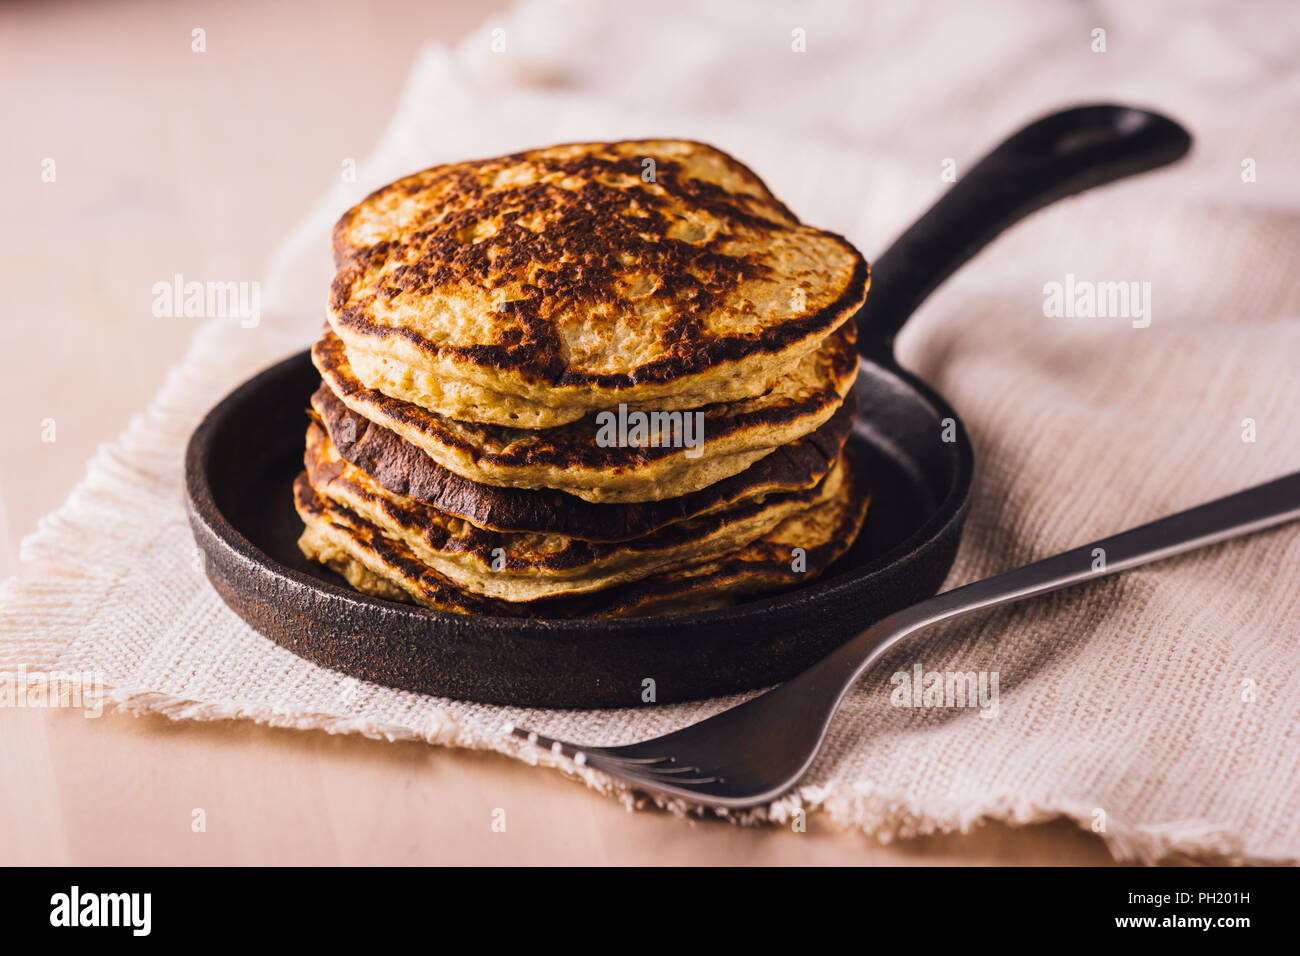 Pile of homemade pancakes freshly made on a small pan, ready to eat - Stock Image